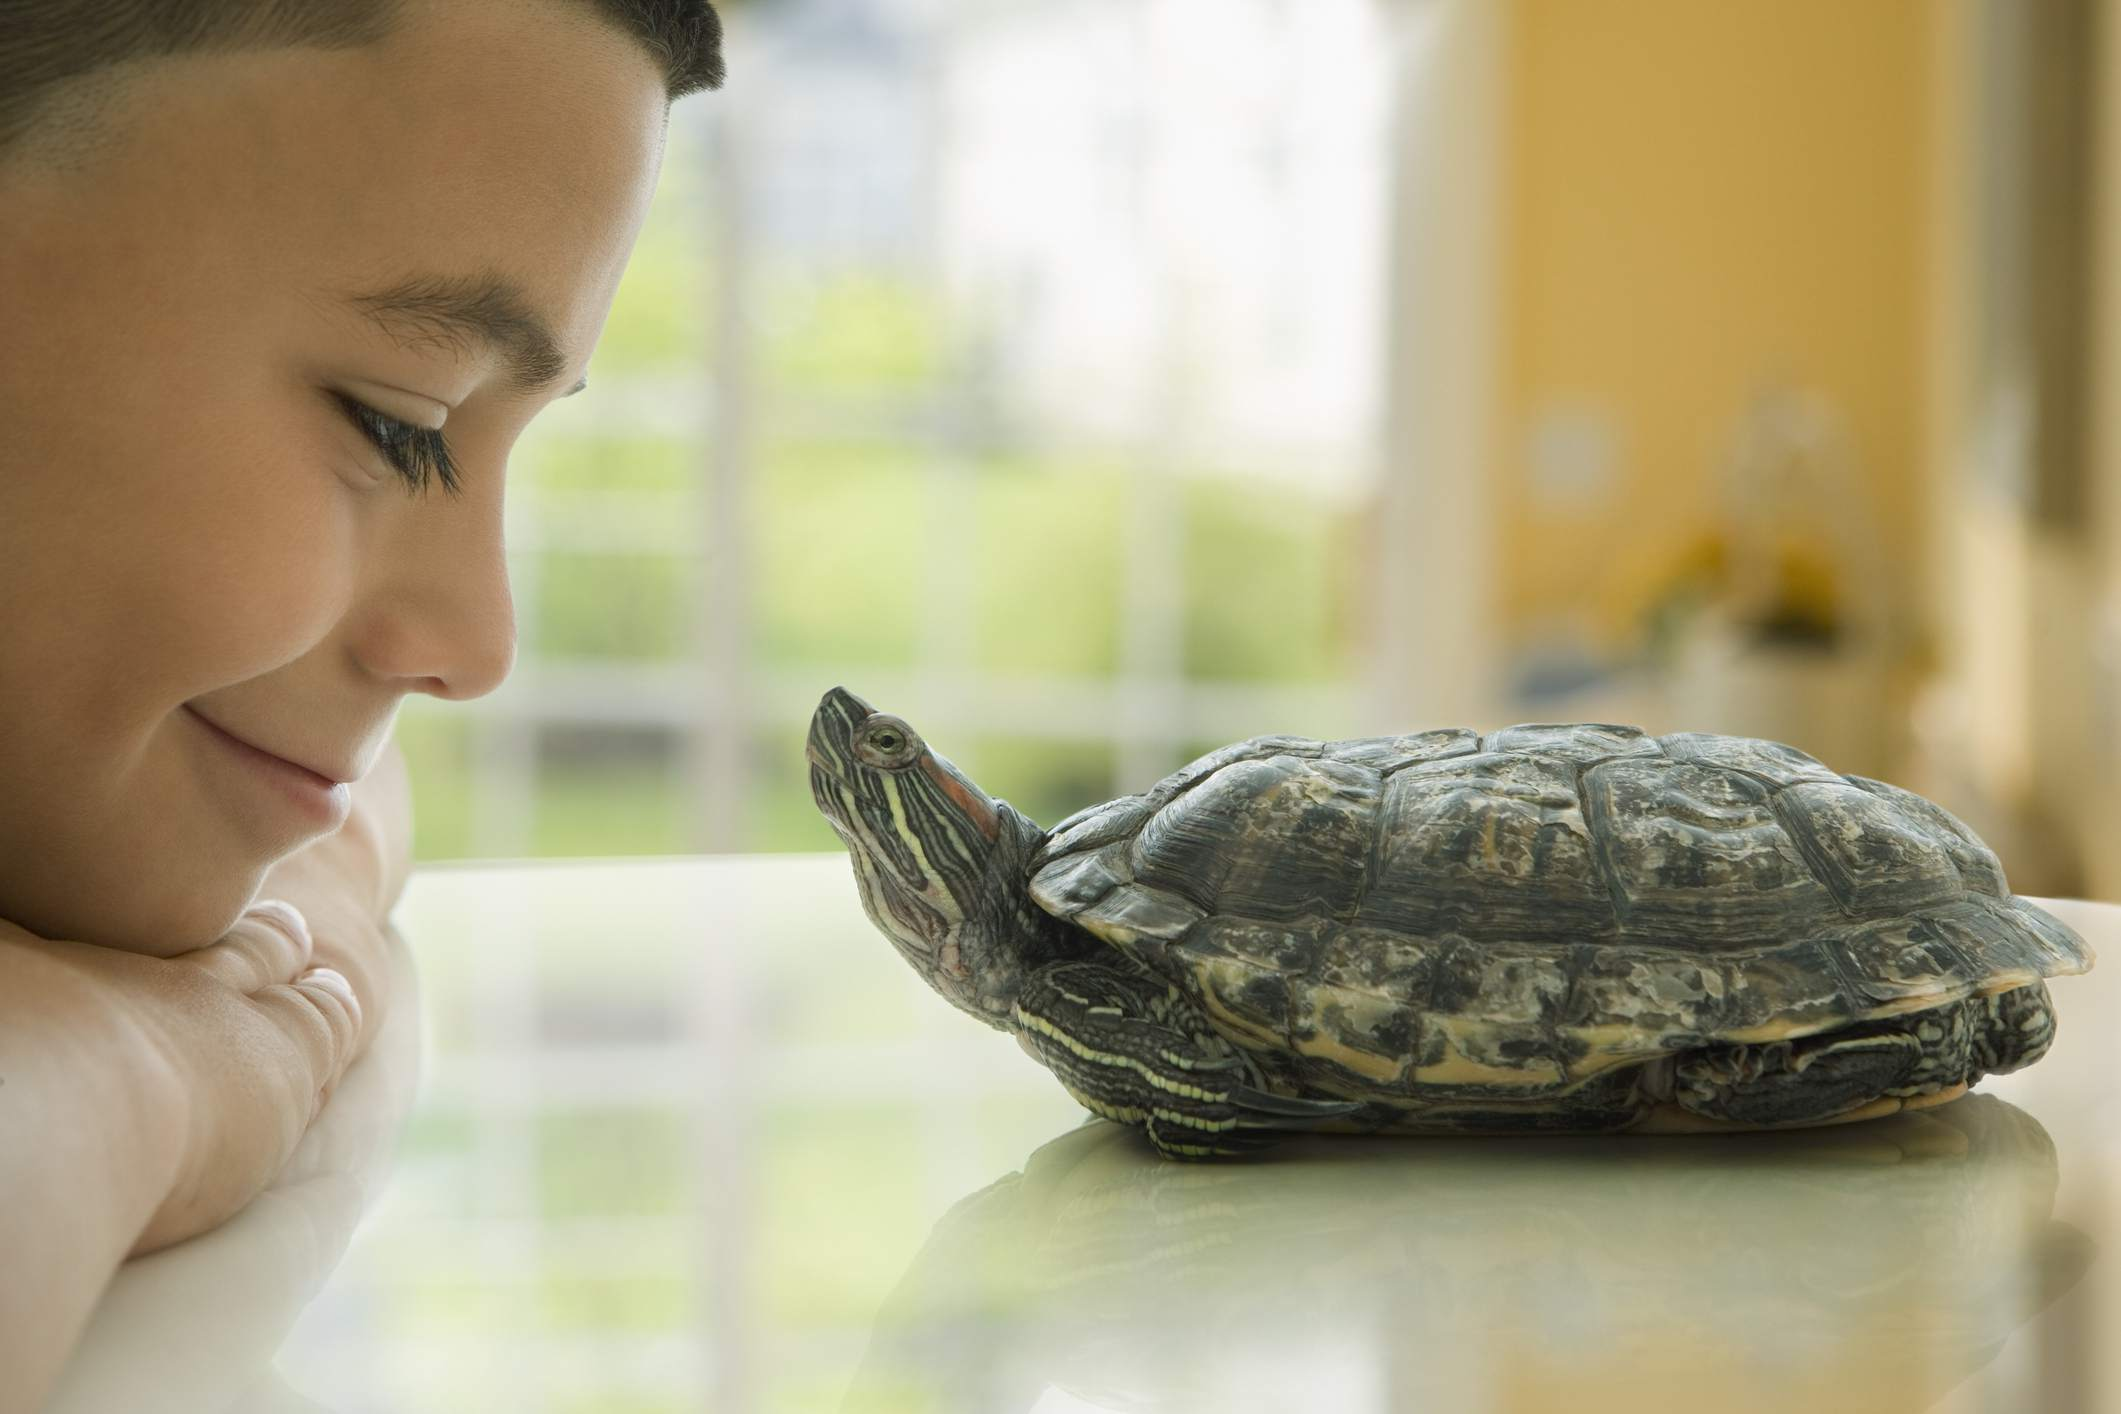 A boy and his pet turtle looking at each other.